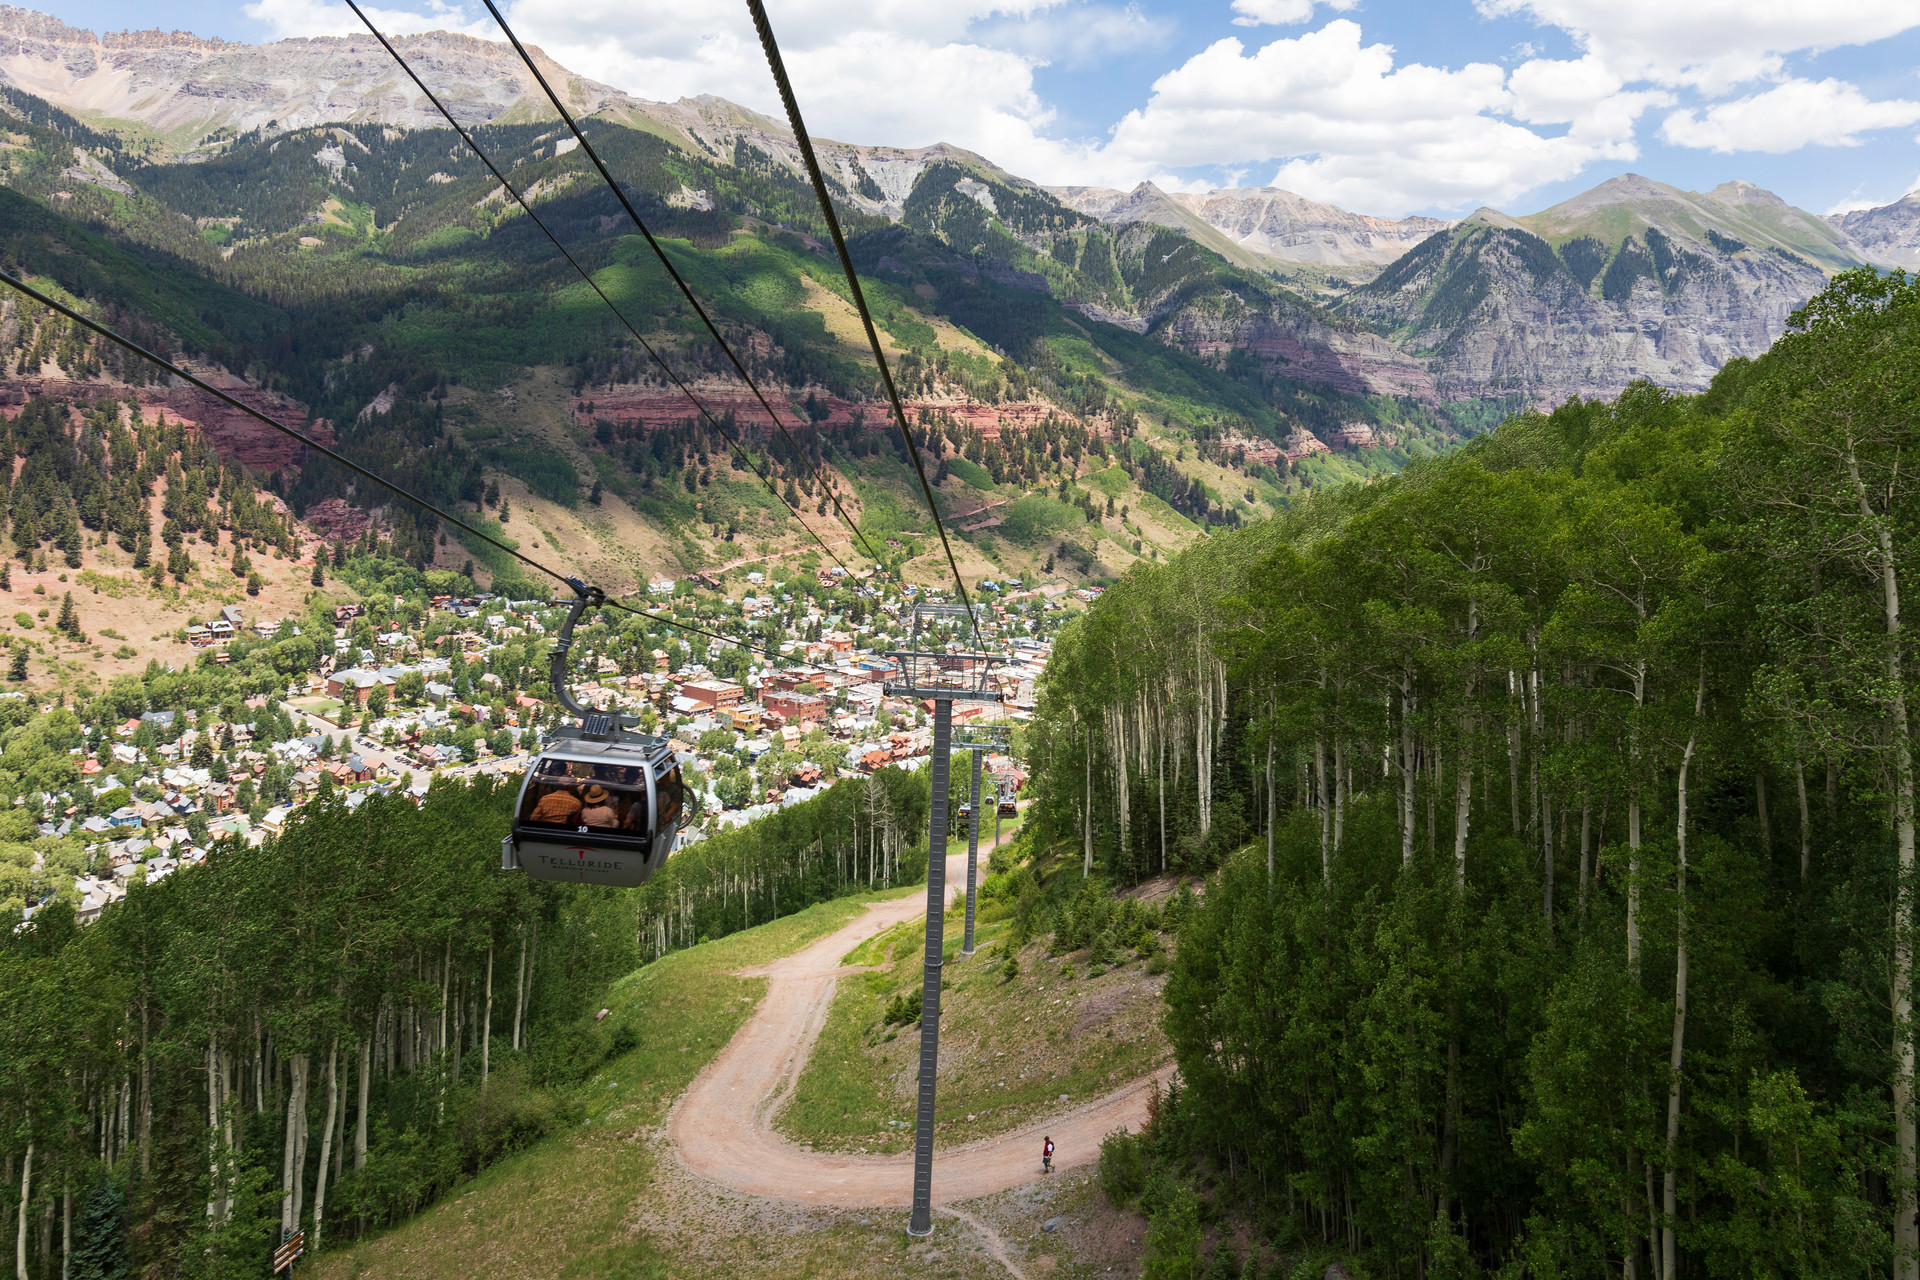 Summer Time in Telluride